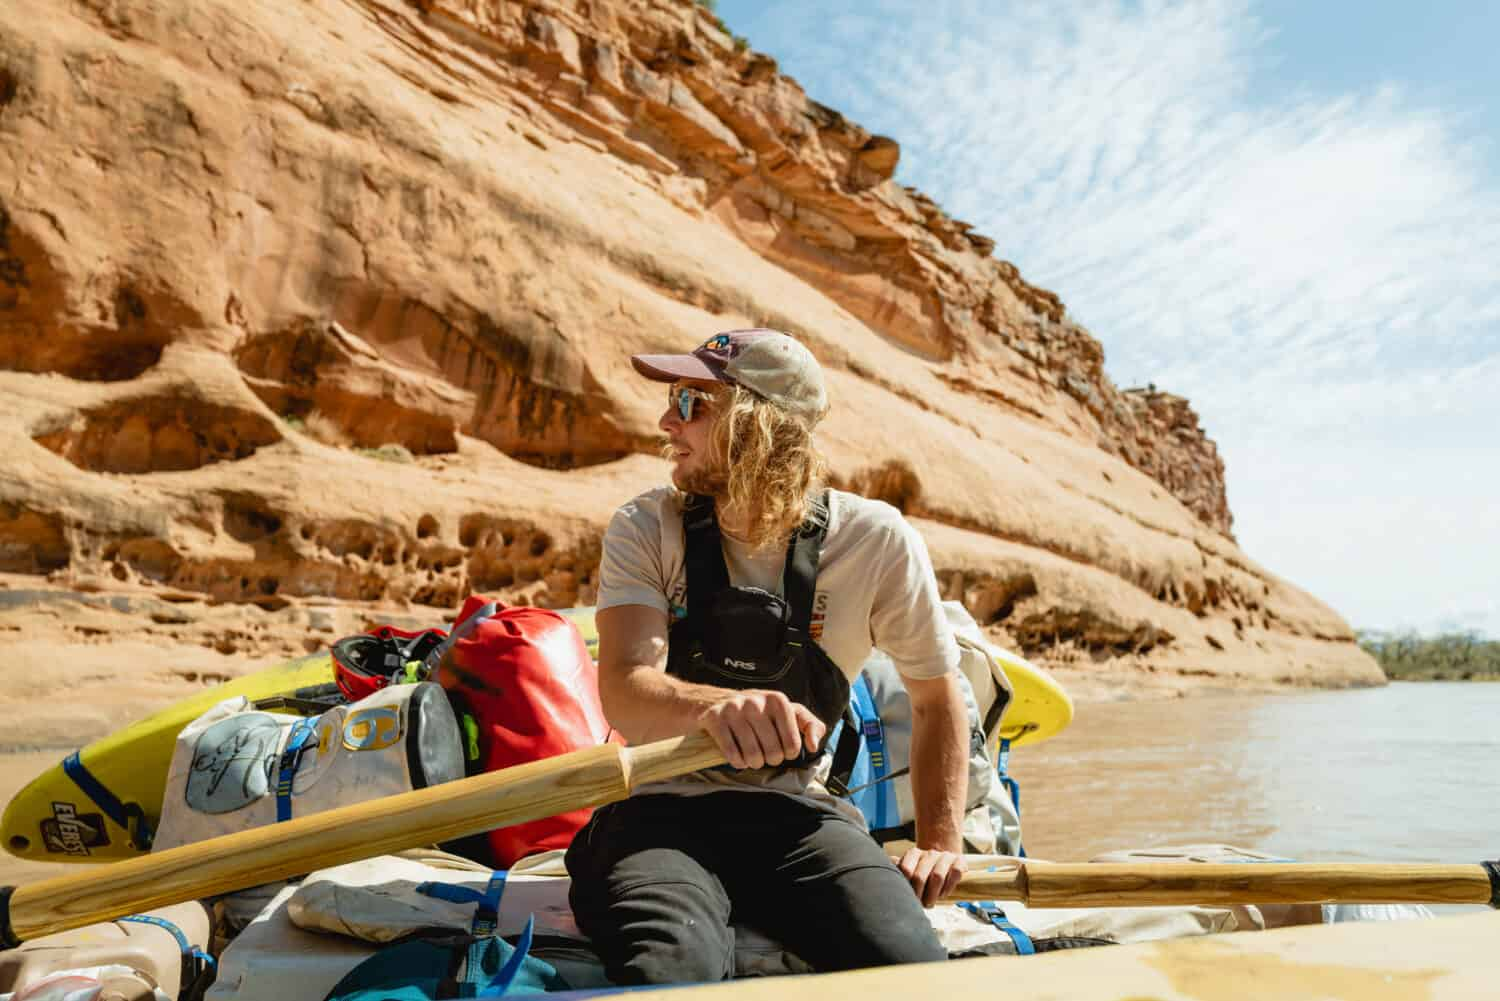 Zac, our OARS river rafting guide. paddling on the Colorado River